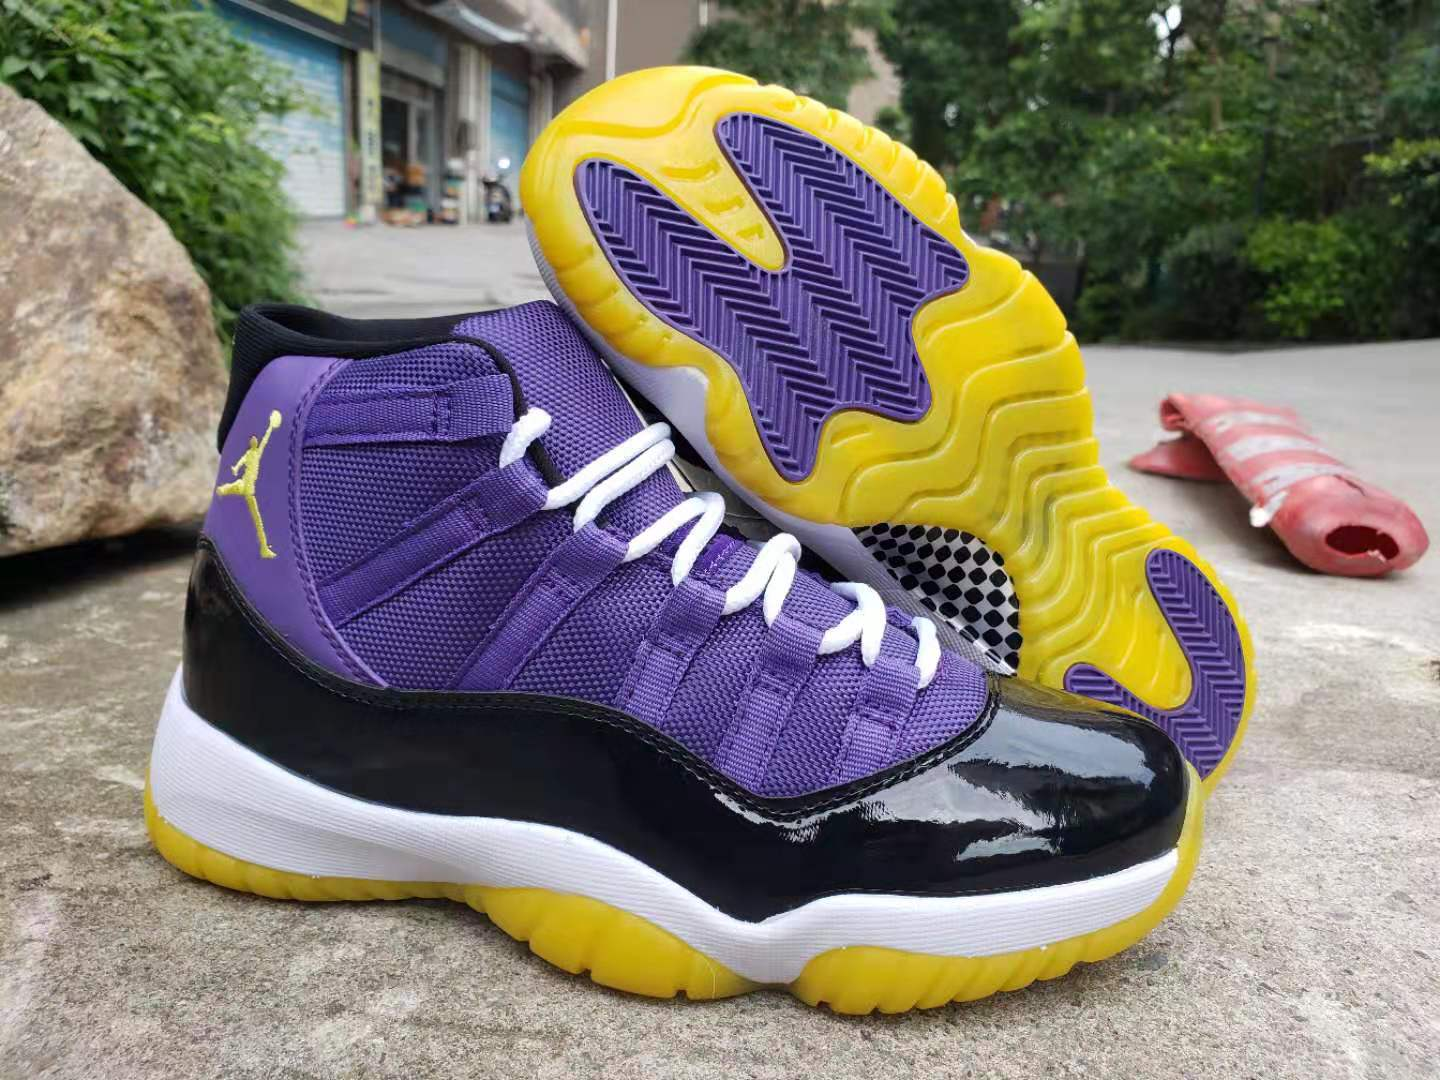 Men's Running Weapon Air Jordan 11 Shoes 007